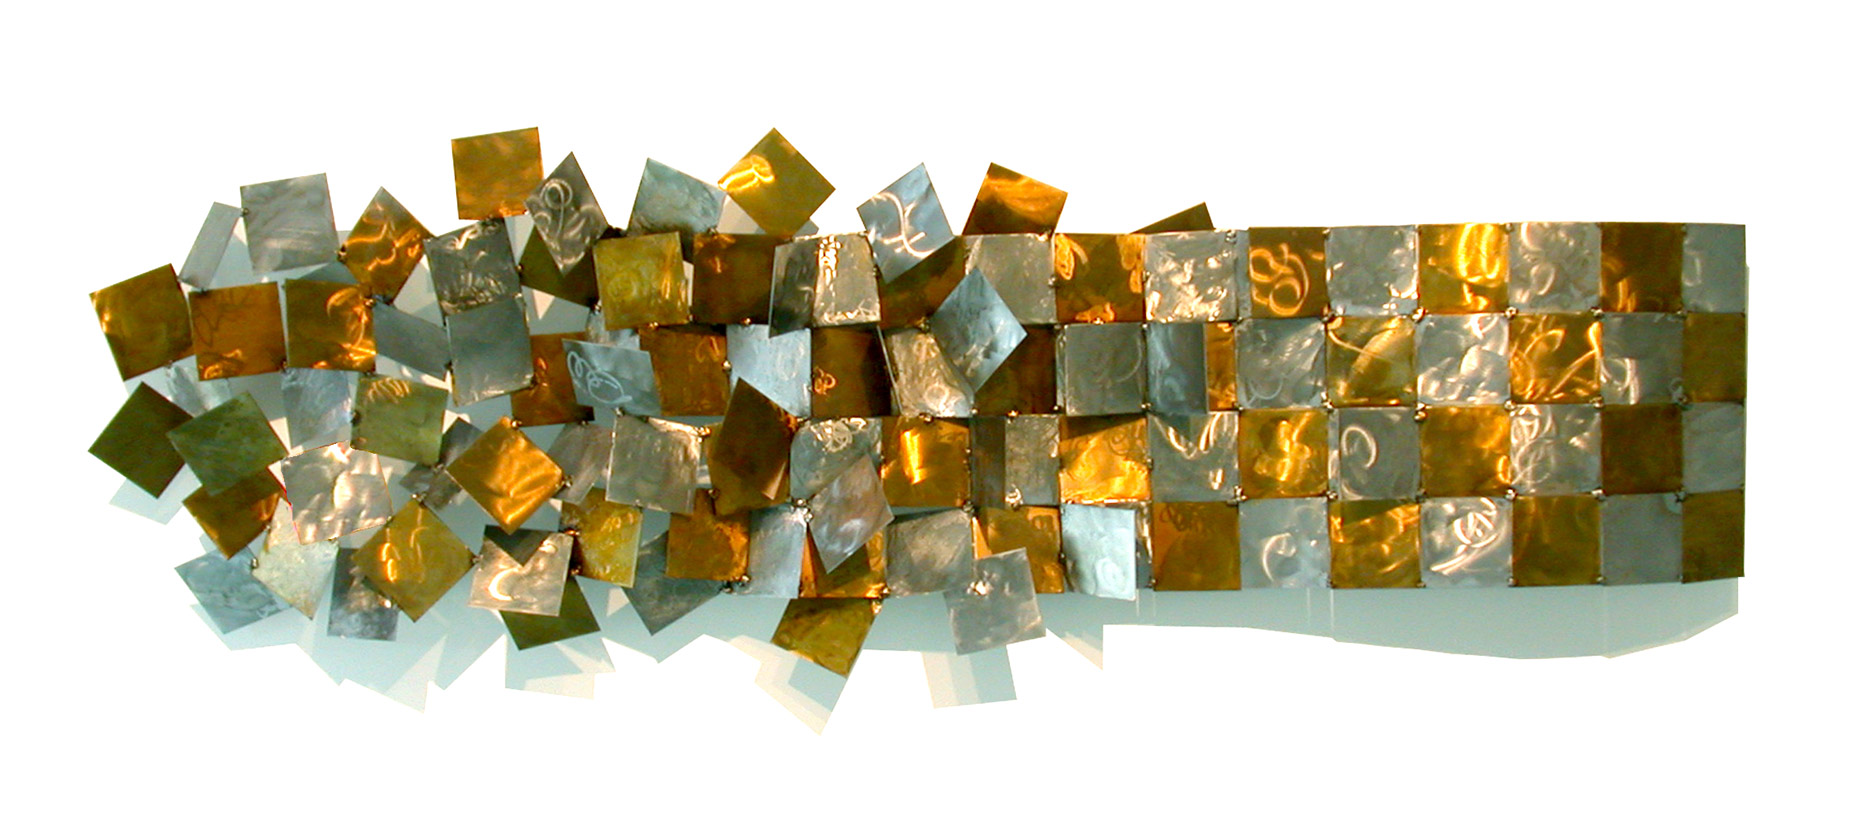 Chaos To Order Sculptural wall Piece by Peter Diepenbrock